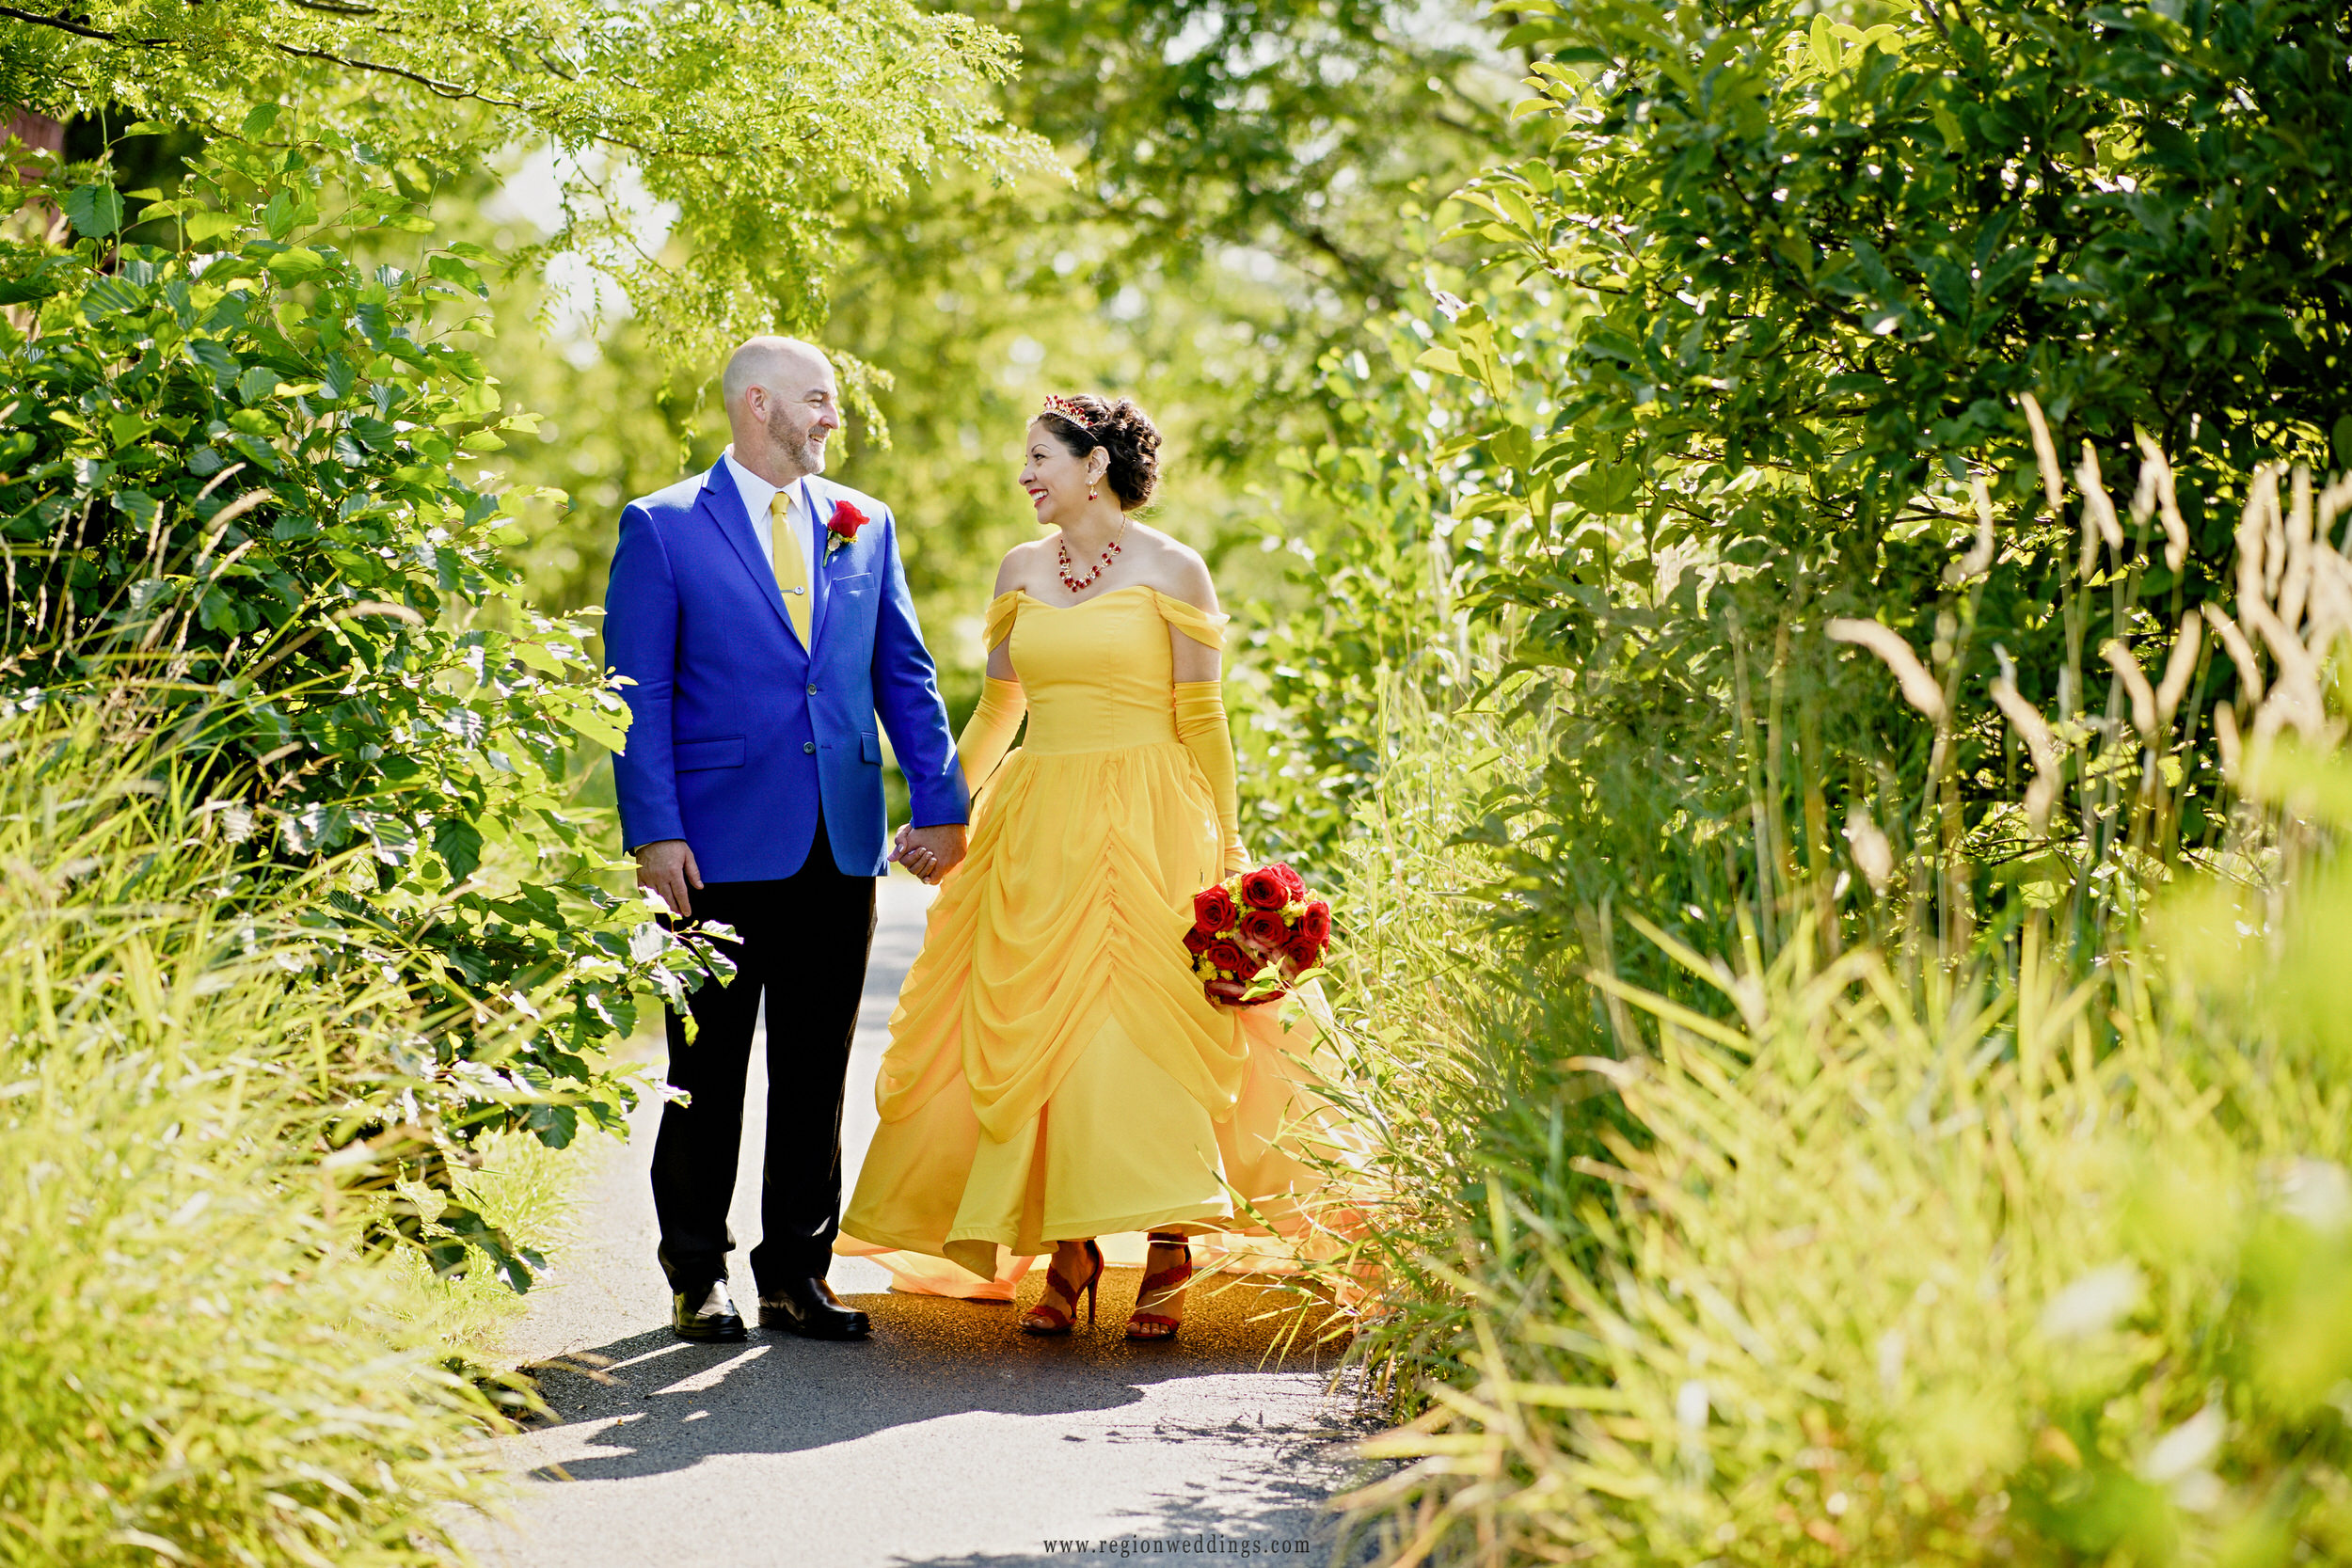 Bride and groom take a stroll during their Disney themed wedding.